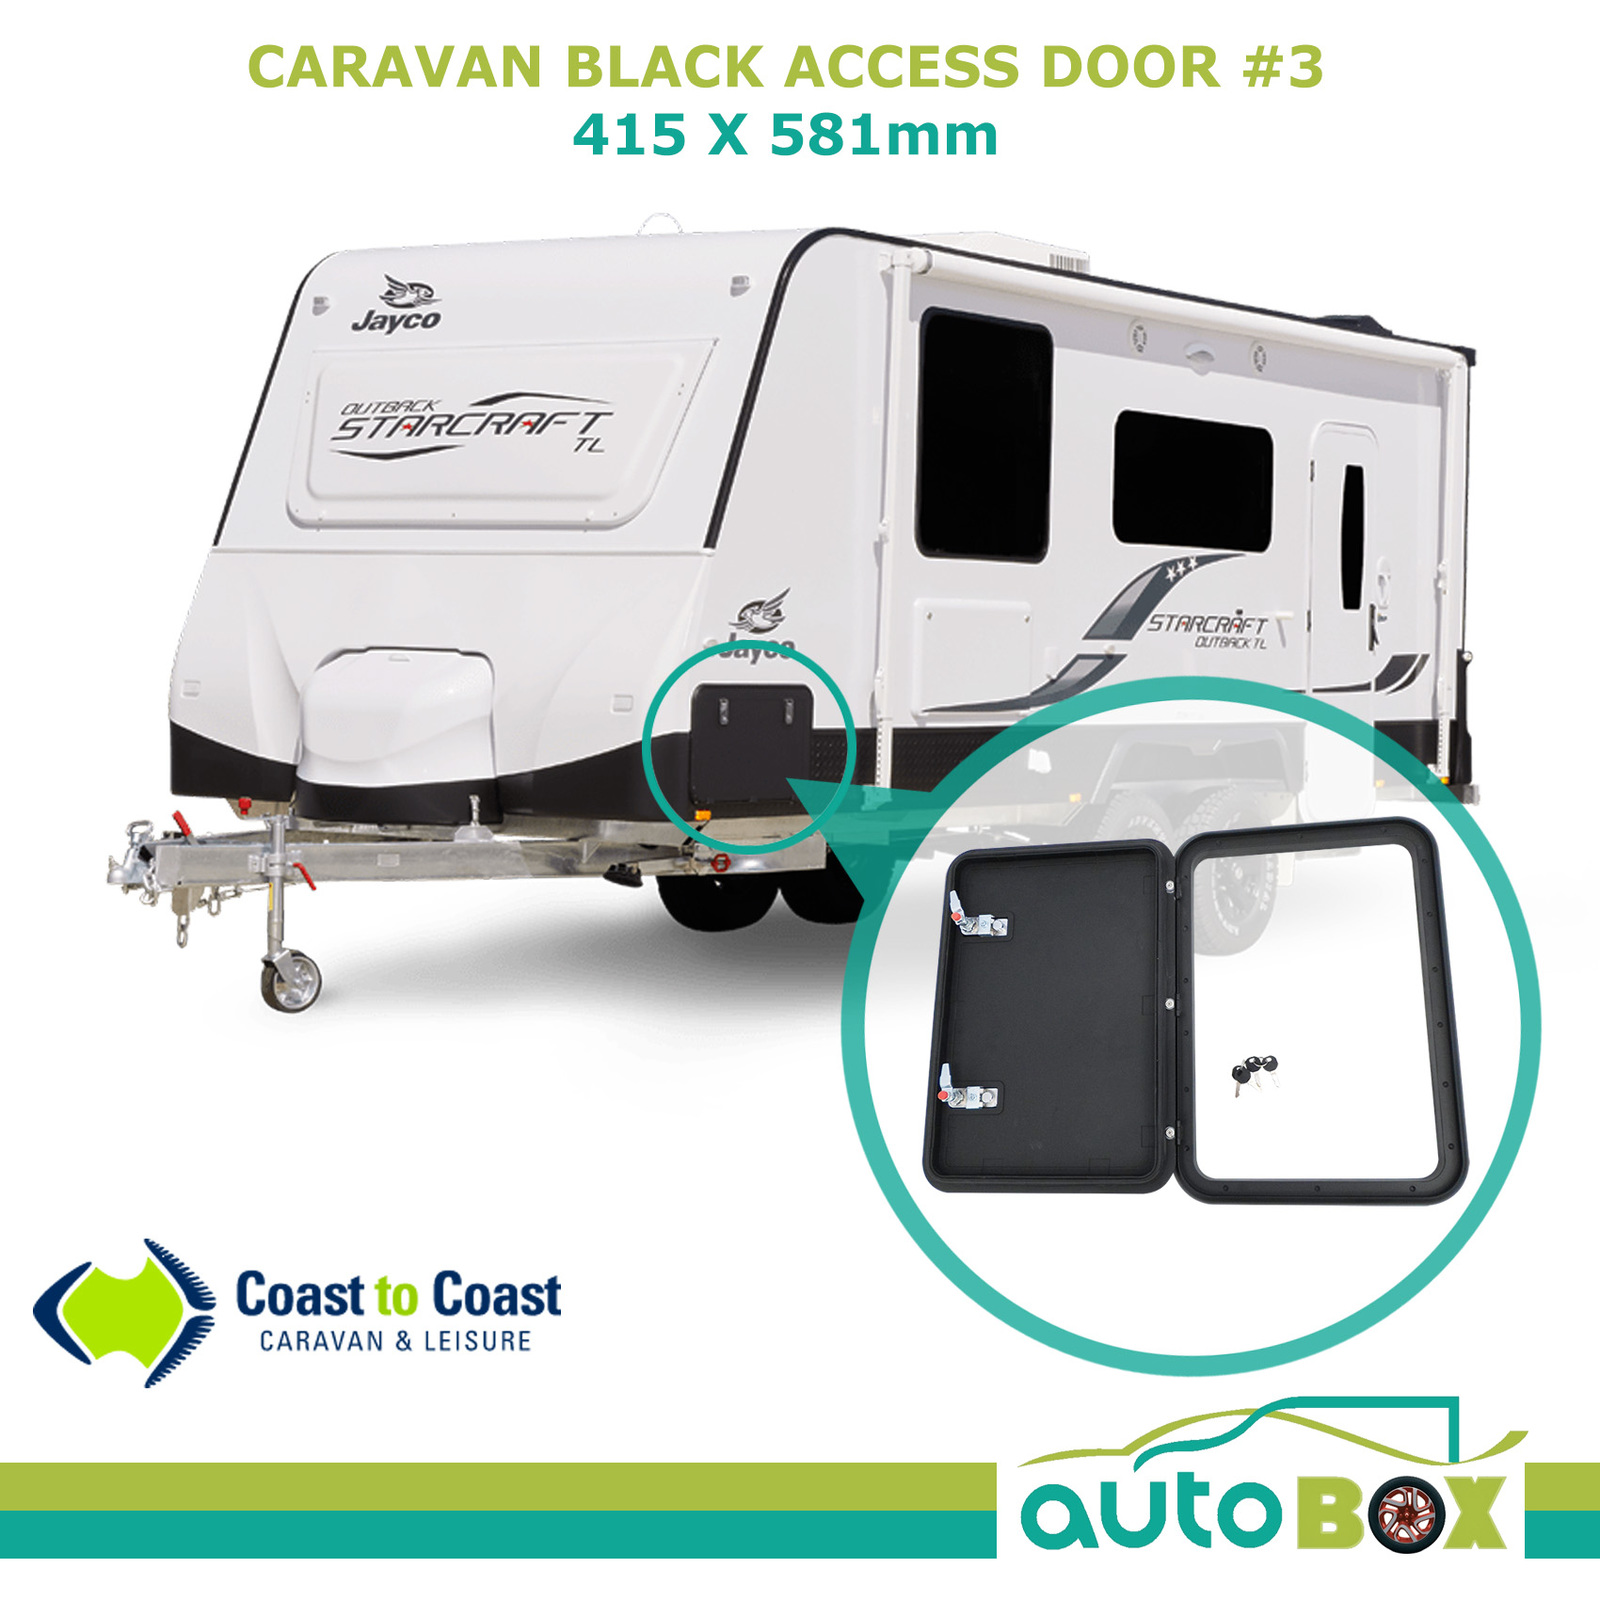 CARAVAN ACCESS DOOR #3 415 x 581mm Ext Black RV Camper Trailer Motorhome  Jayco